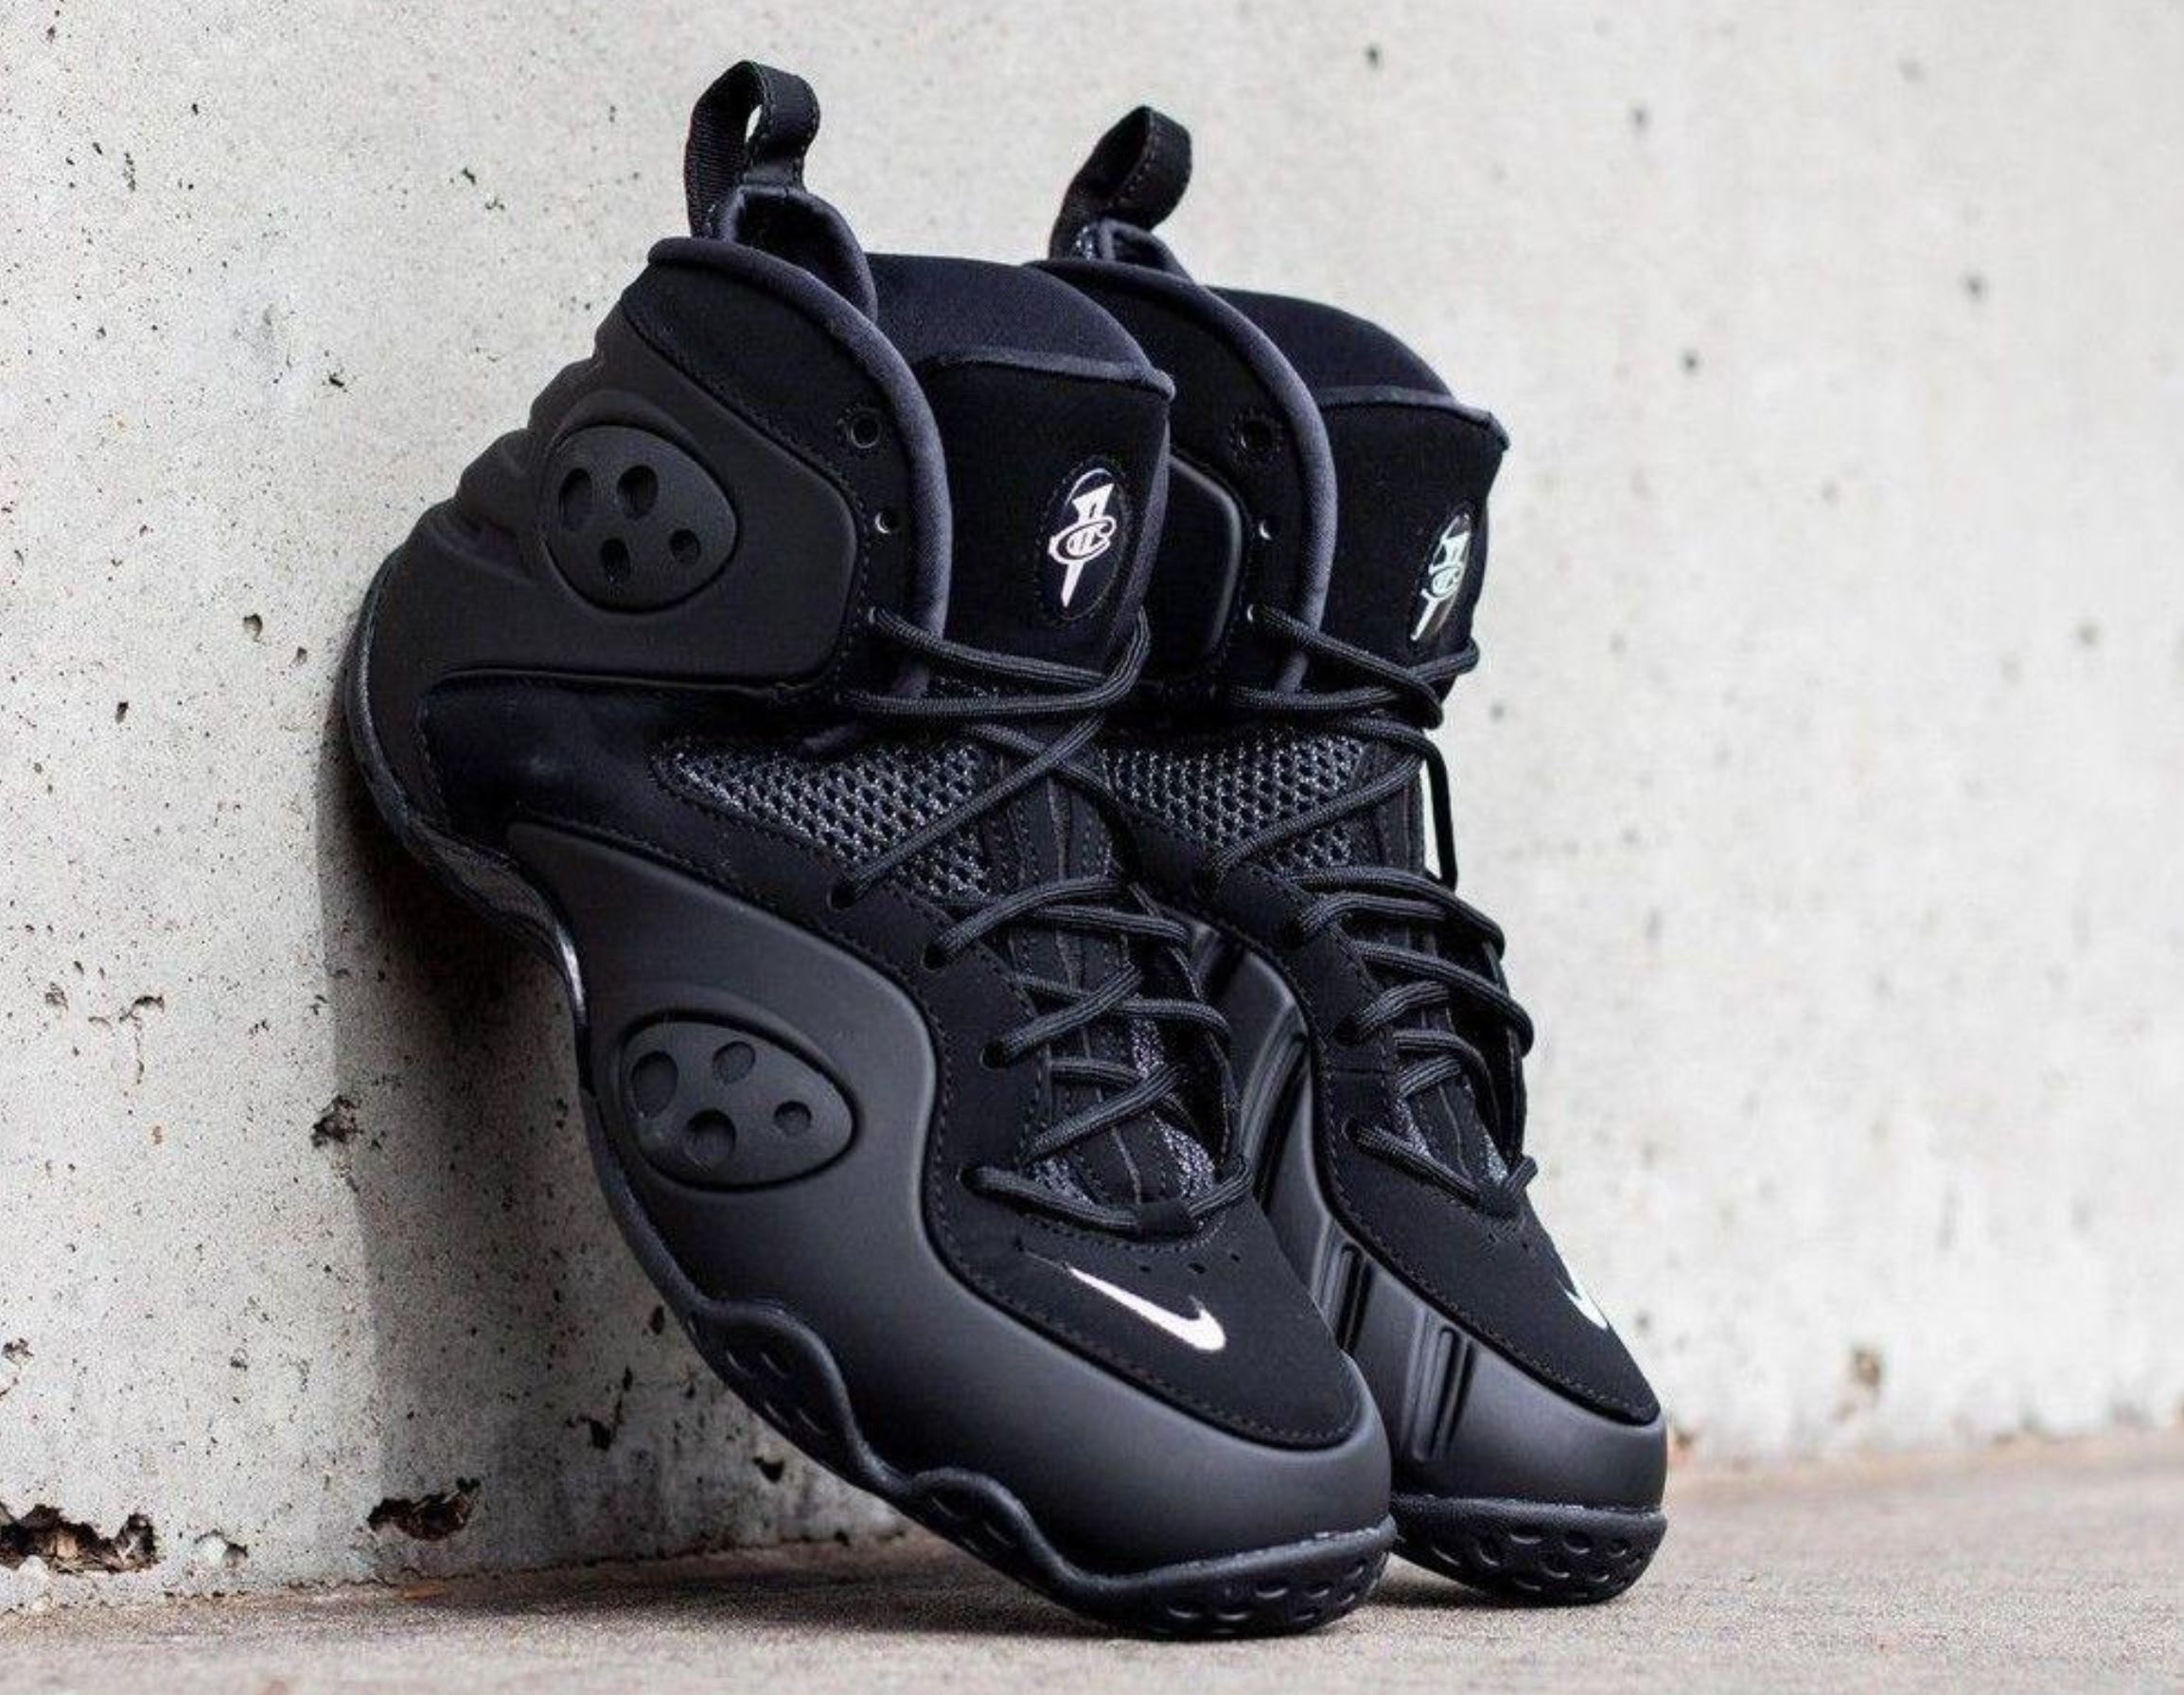 dfff93486995 Is From Zoom 2011  matte Weartesters The Back Black  Nike Rookie In  UA1x6w6Tq